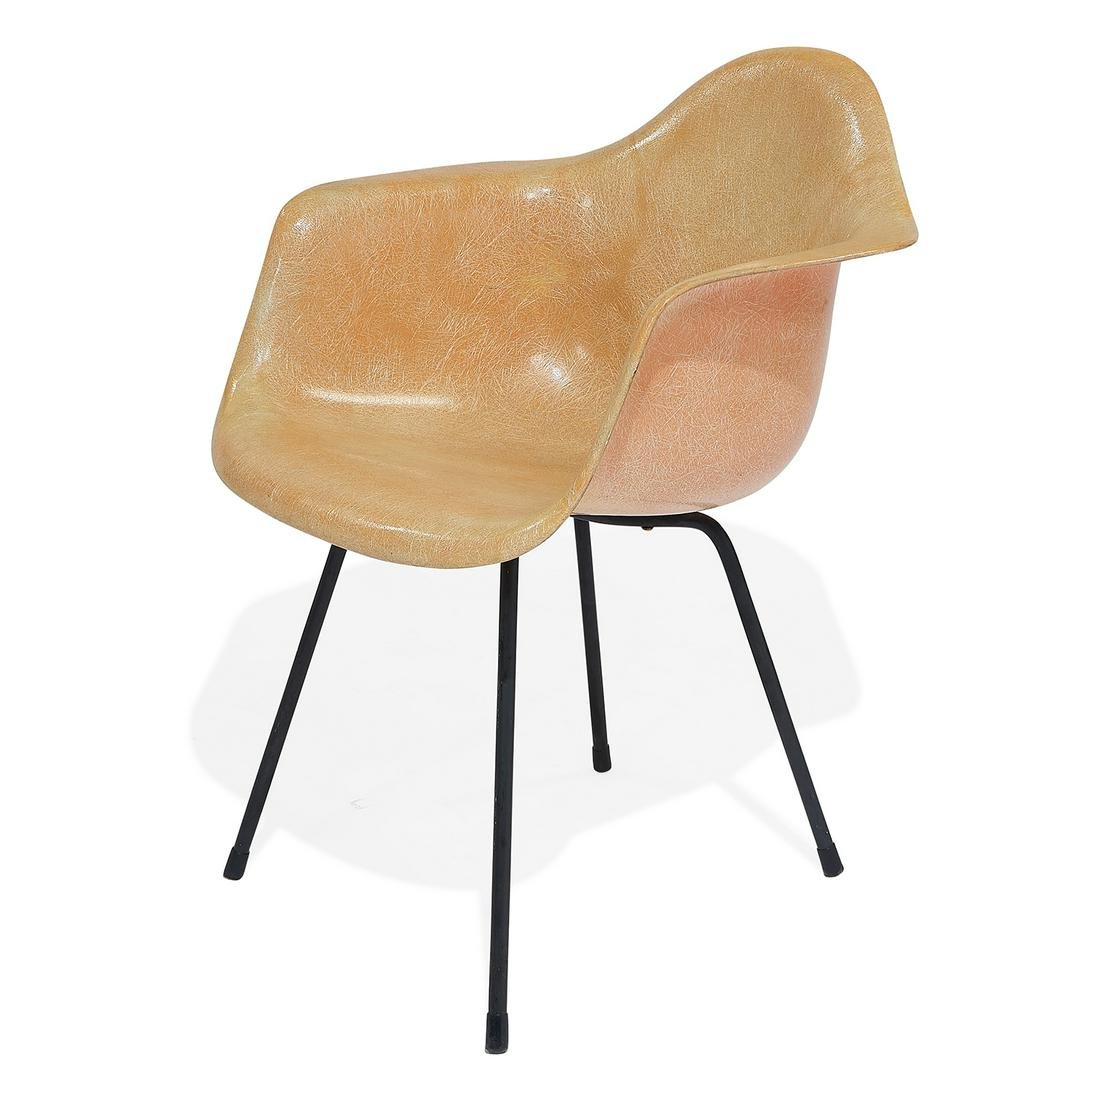 Eames for Herman Miller Zenith Plastics DAX chair